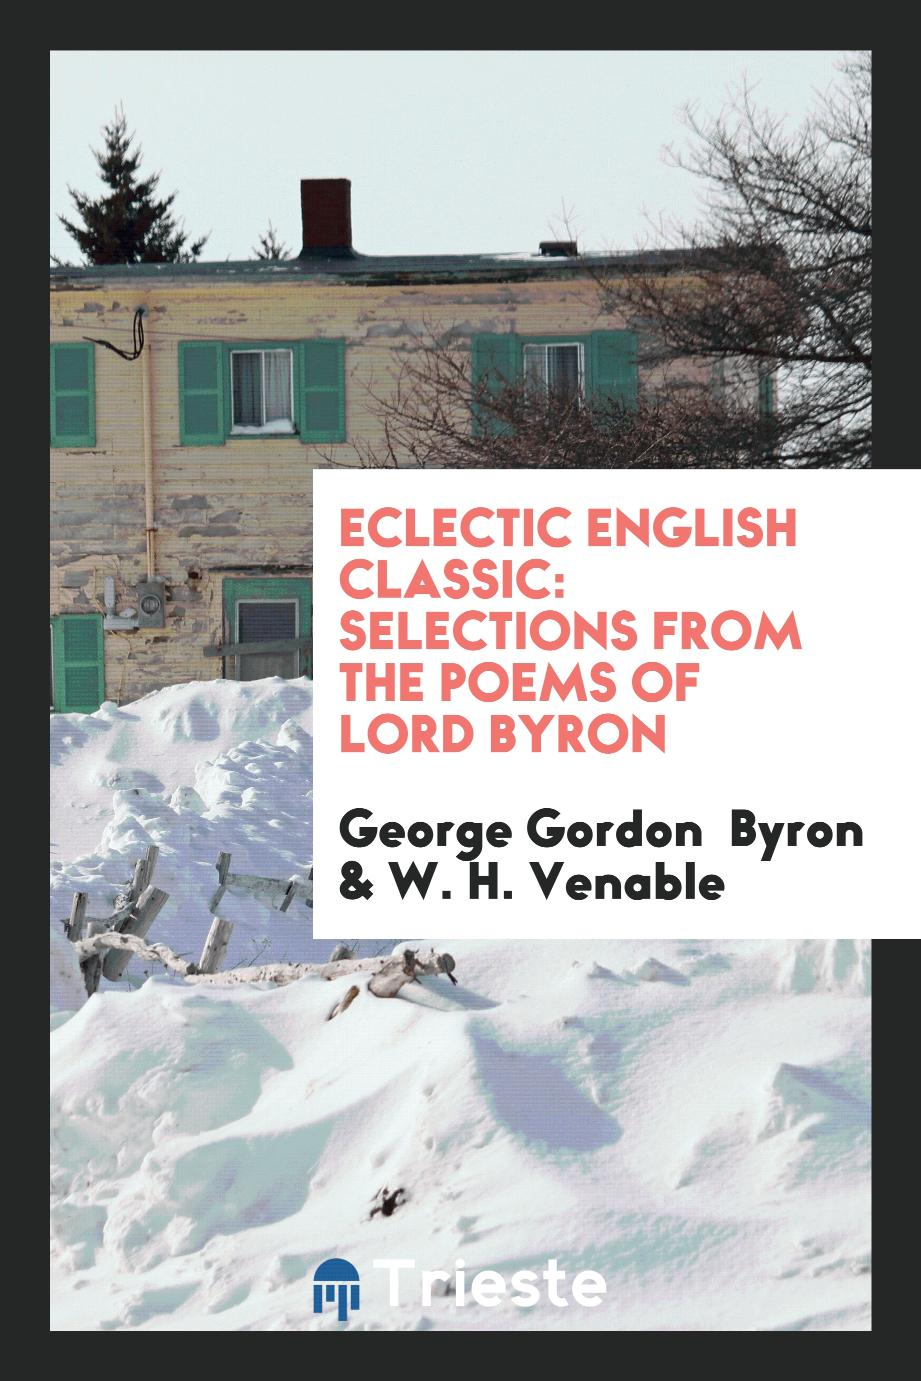 Eclectic English Classic: Selections from the Poems of Lord Byron